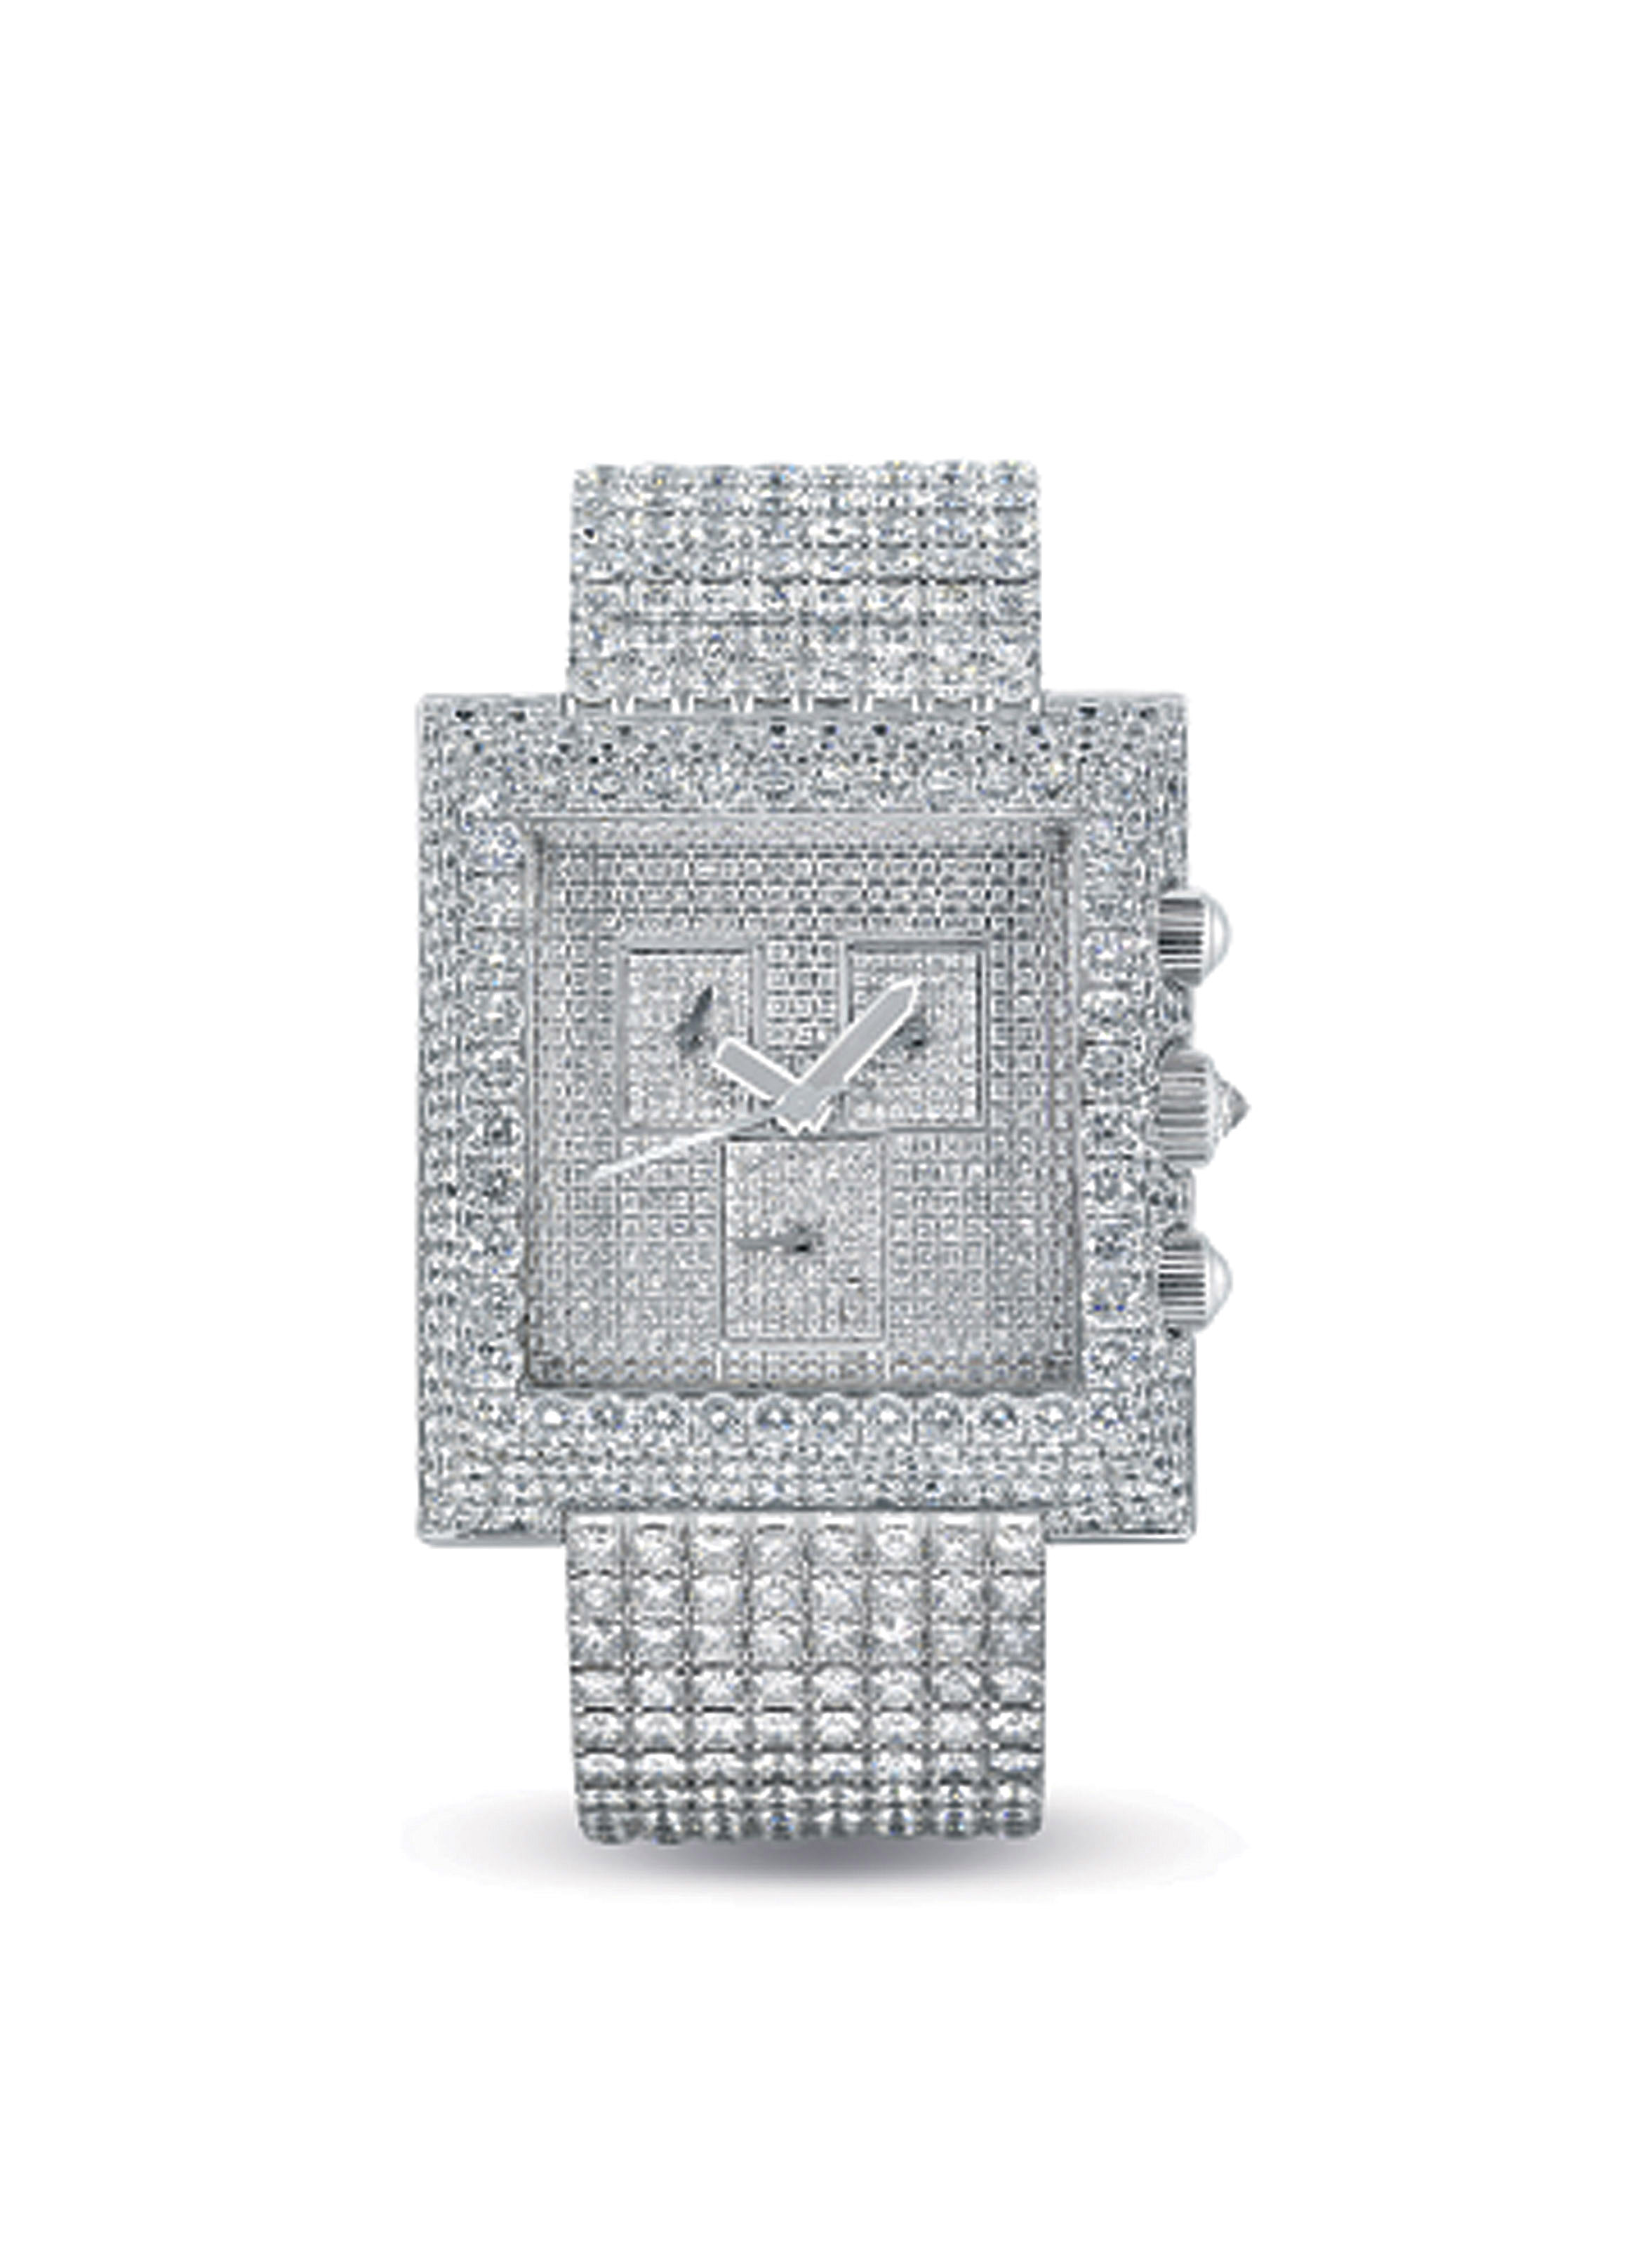 CORUM. AN IMPRESSIVE AND VERY RARE 18K WHITE GOLD AND DIAMOND-SET SQUARE CHRONOGRAPH BRACELET WATCH